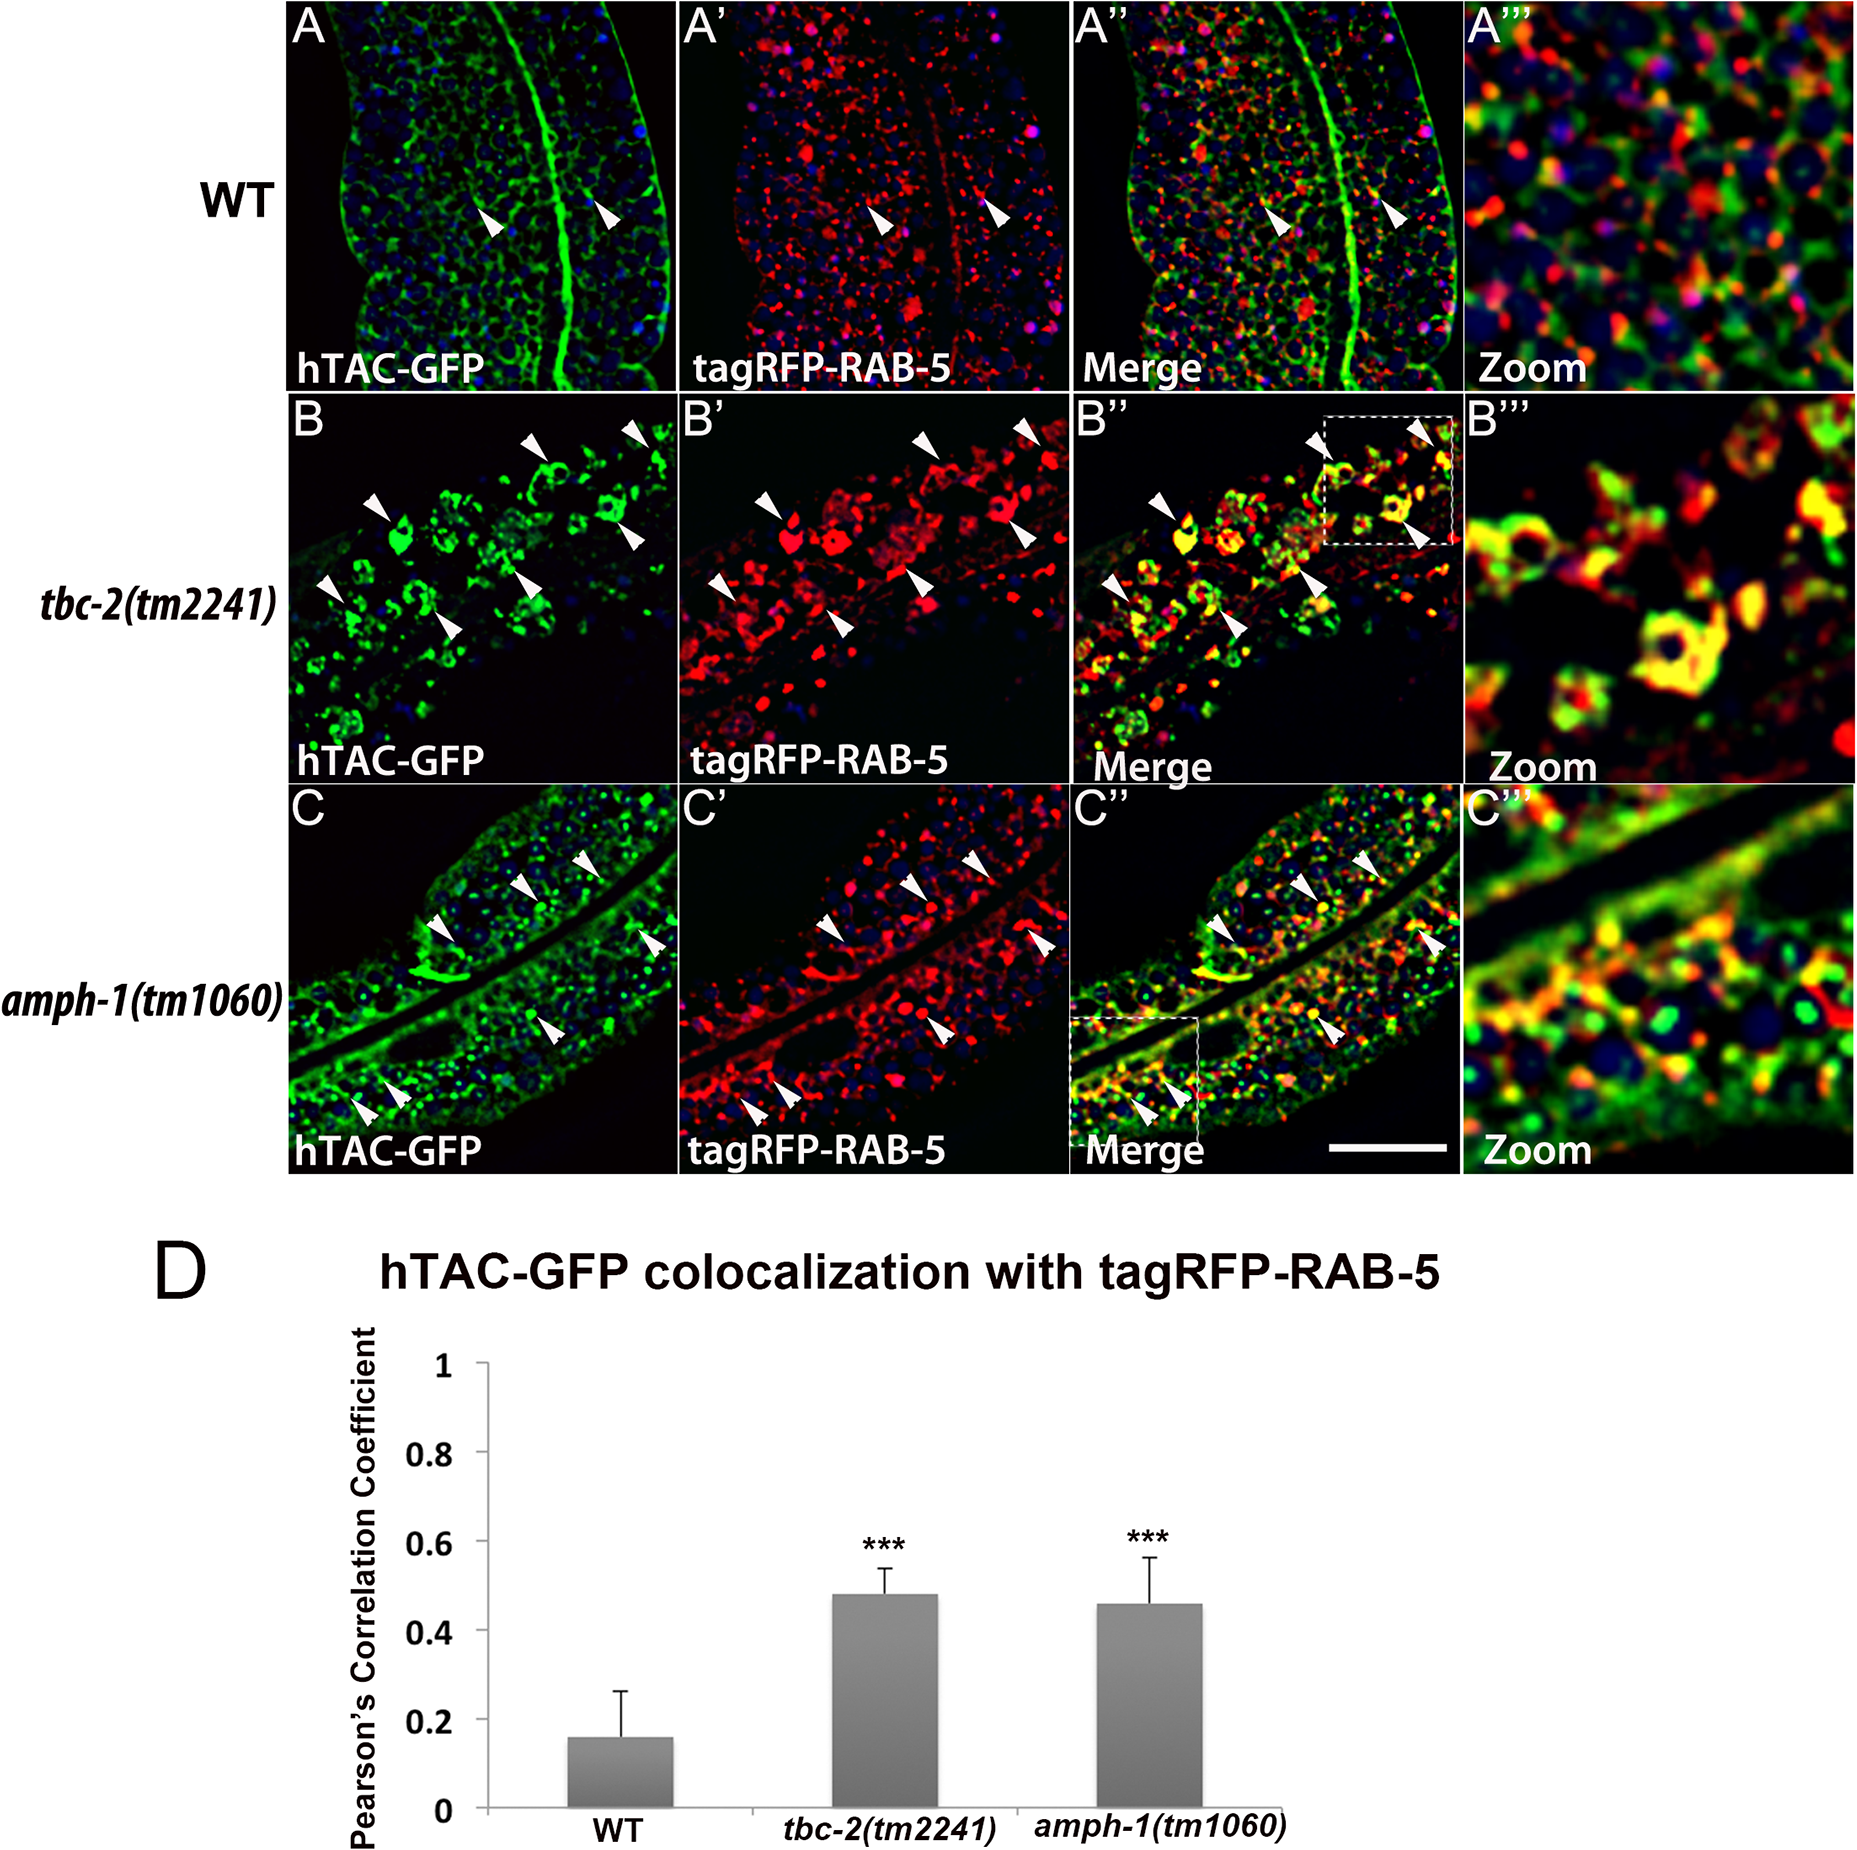 Recycling cargo accumulates in RAB-5 labeled endosomes in <i>tbc-2</i> and <i>amph-1</i> mutants.